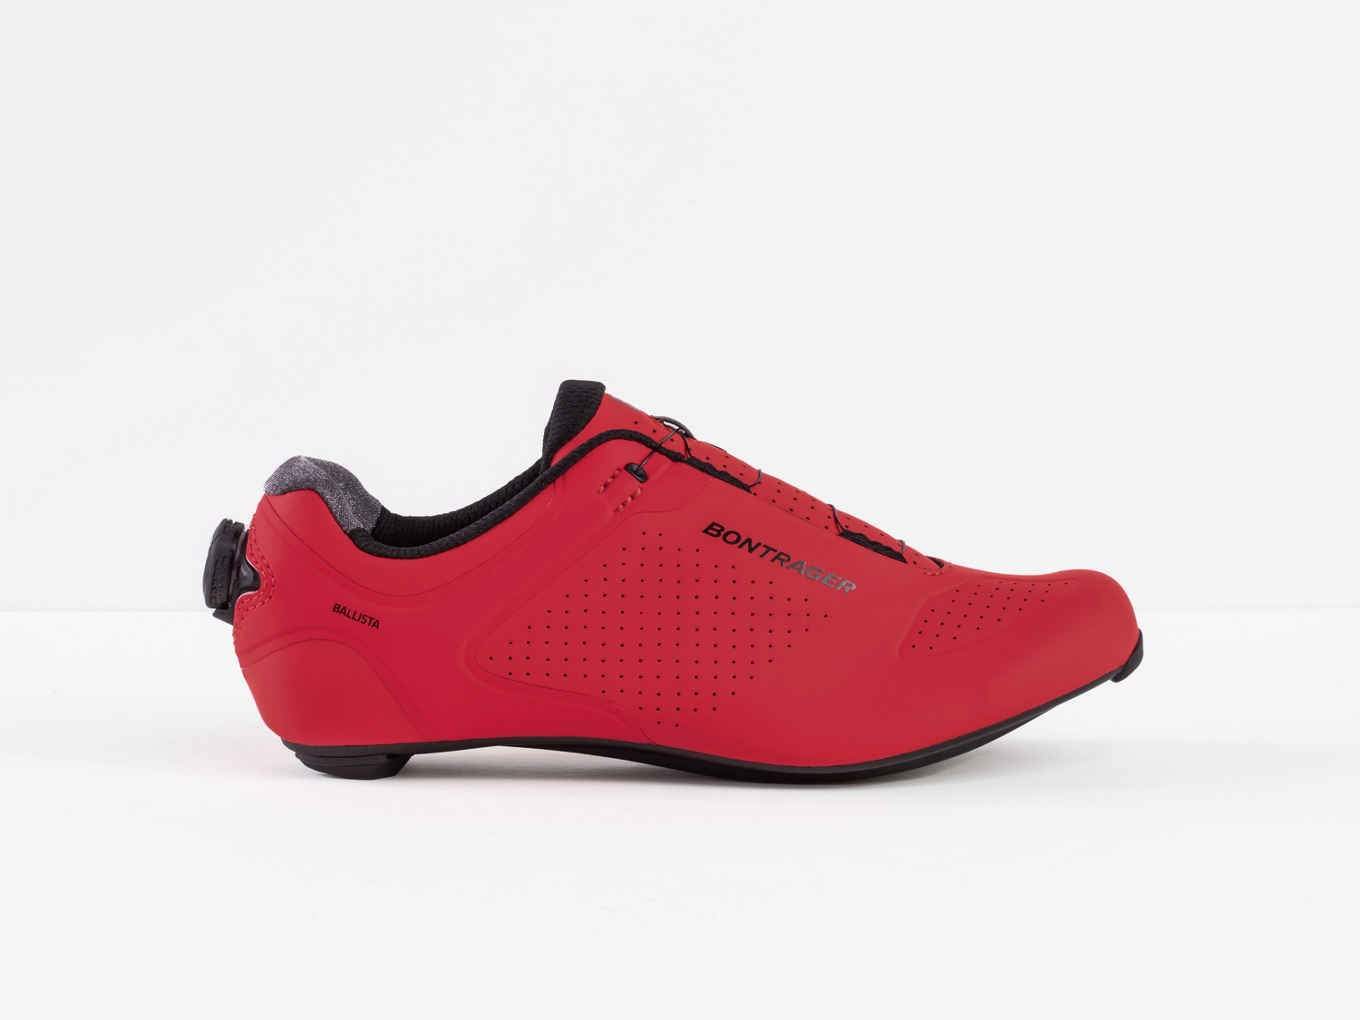 Bontrager Ballista Road Shoe - Cycles Galleria Melbourne